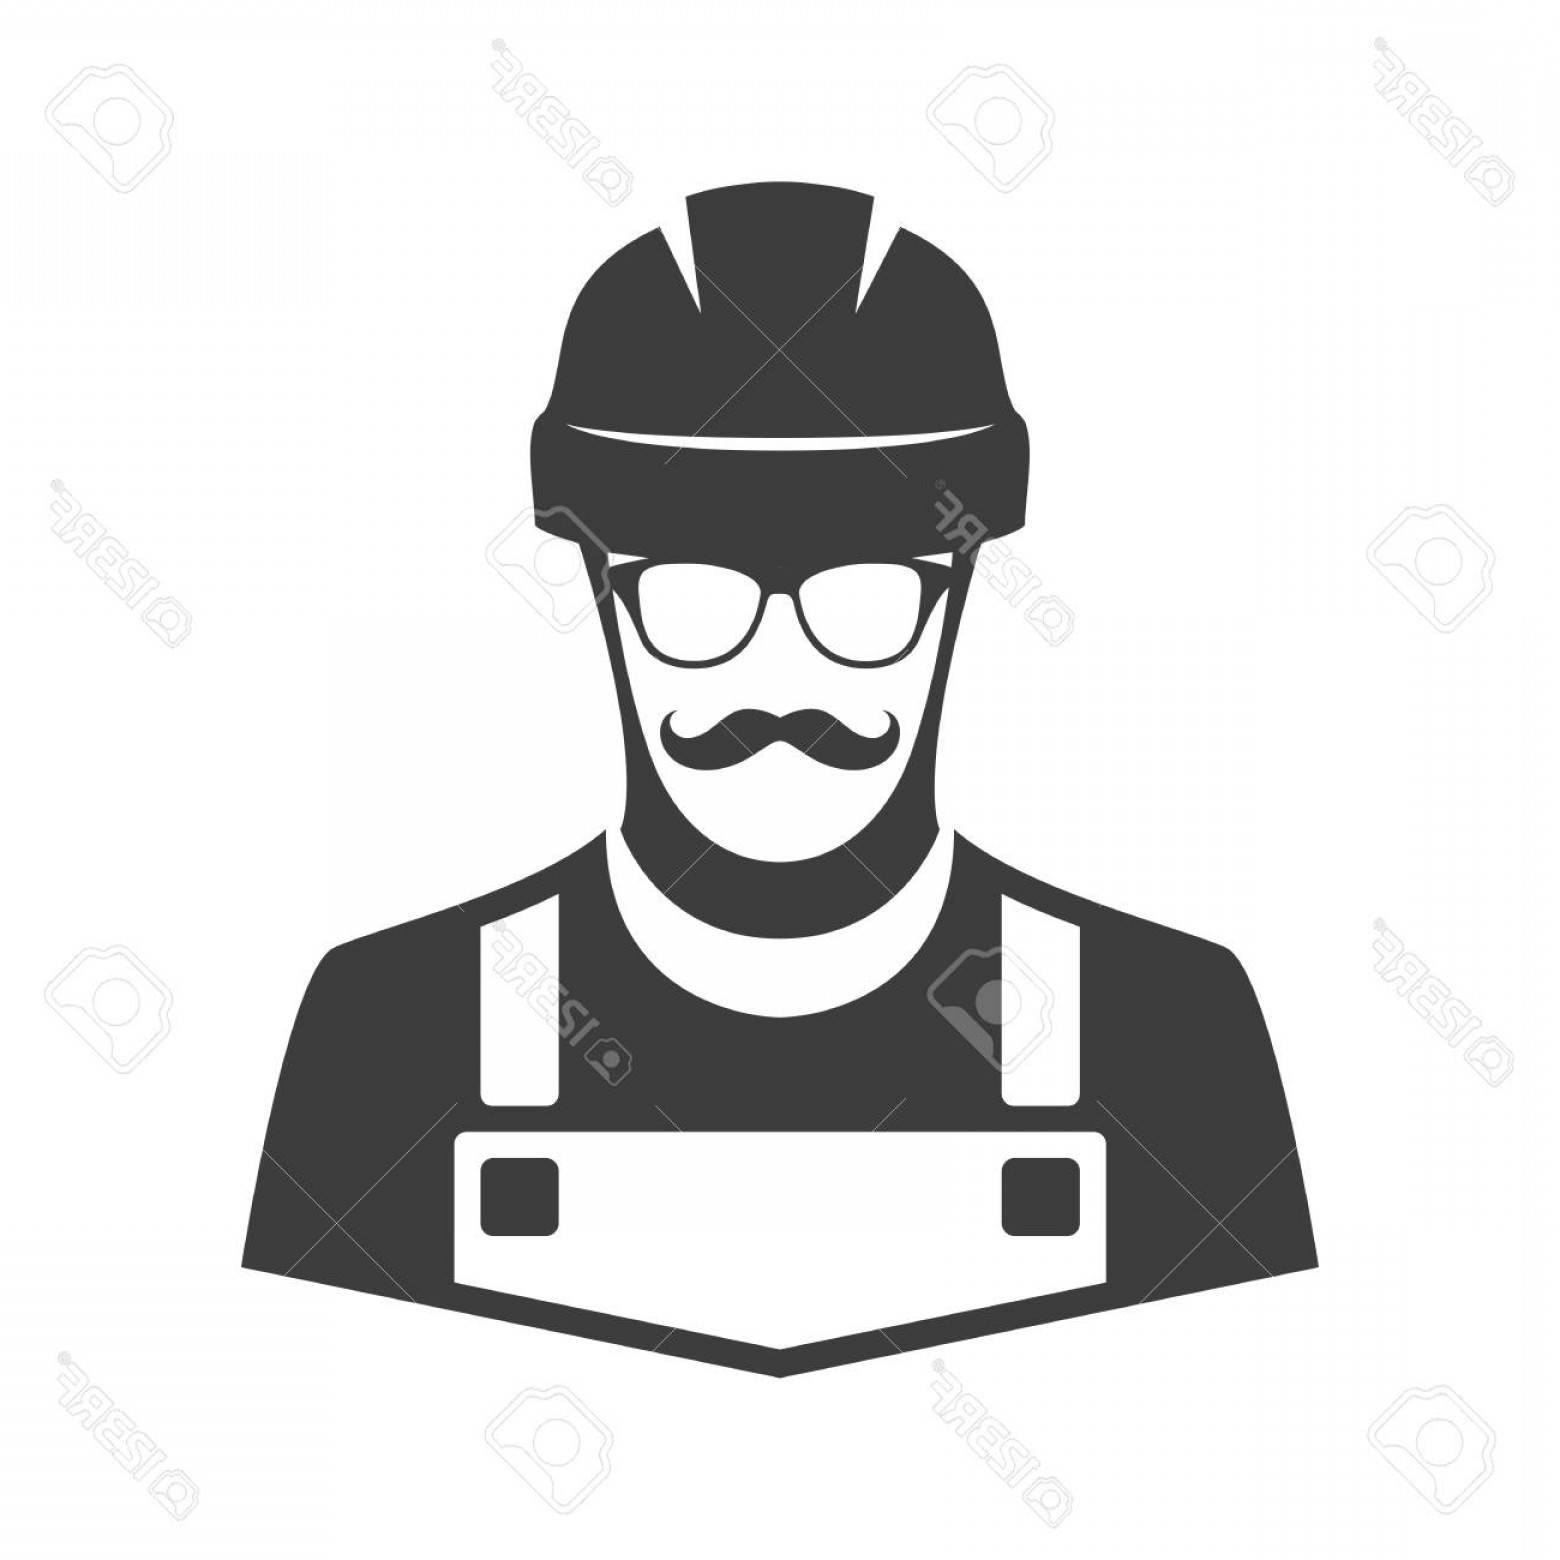 Worker Vector: Photostock Vector Construction Workers Icon Vector Worker Vector Illustration